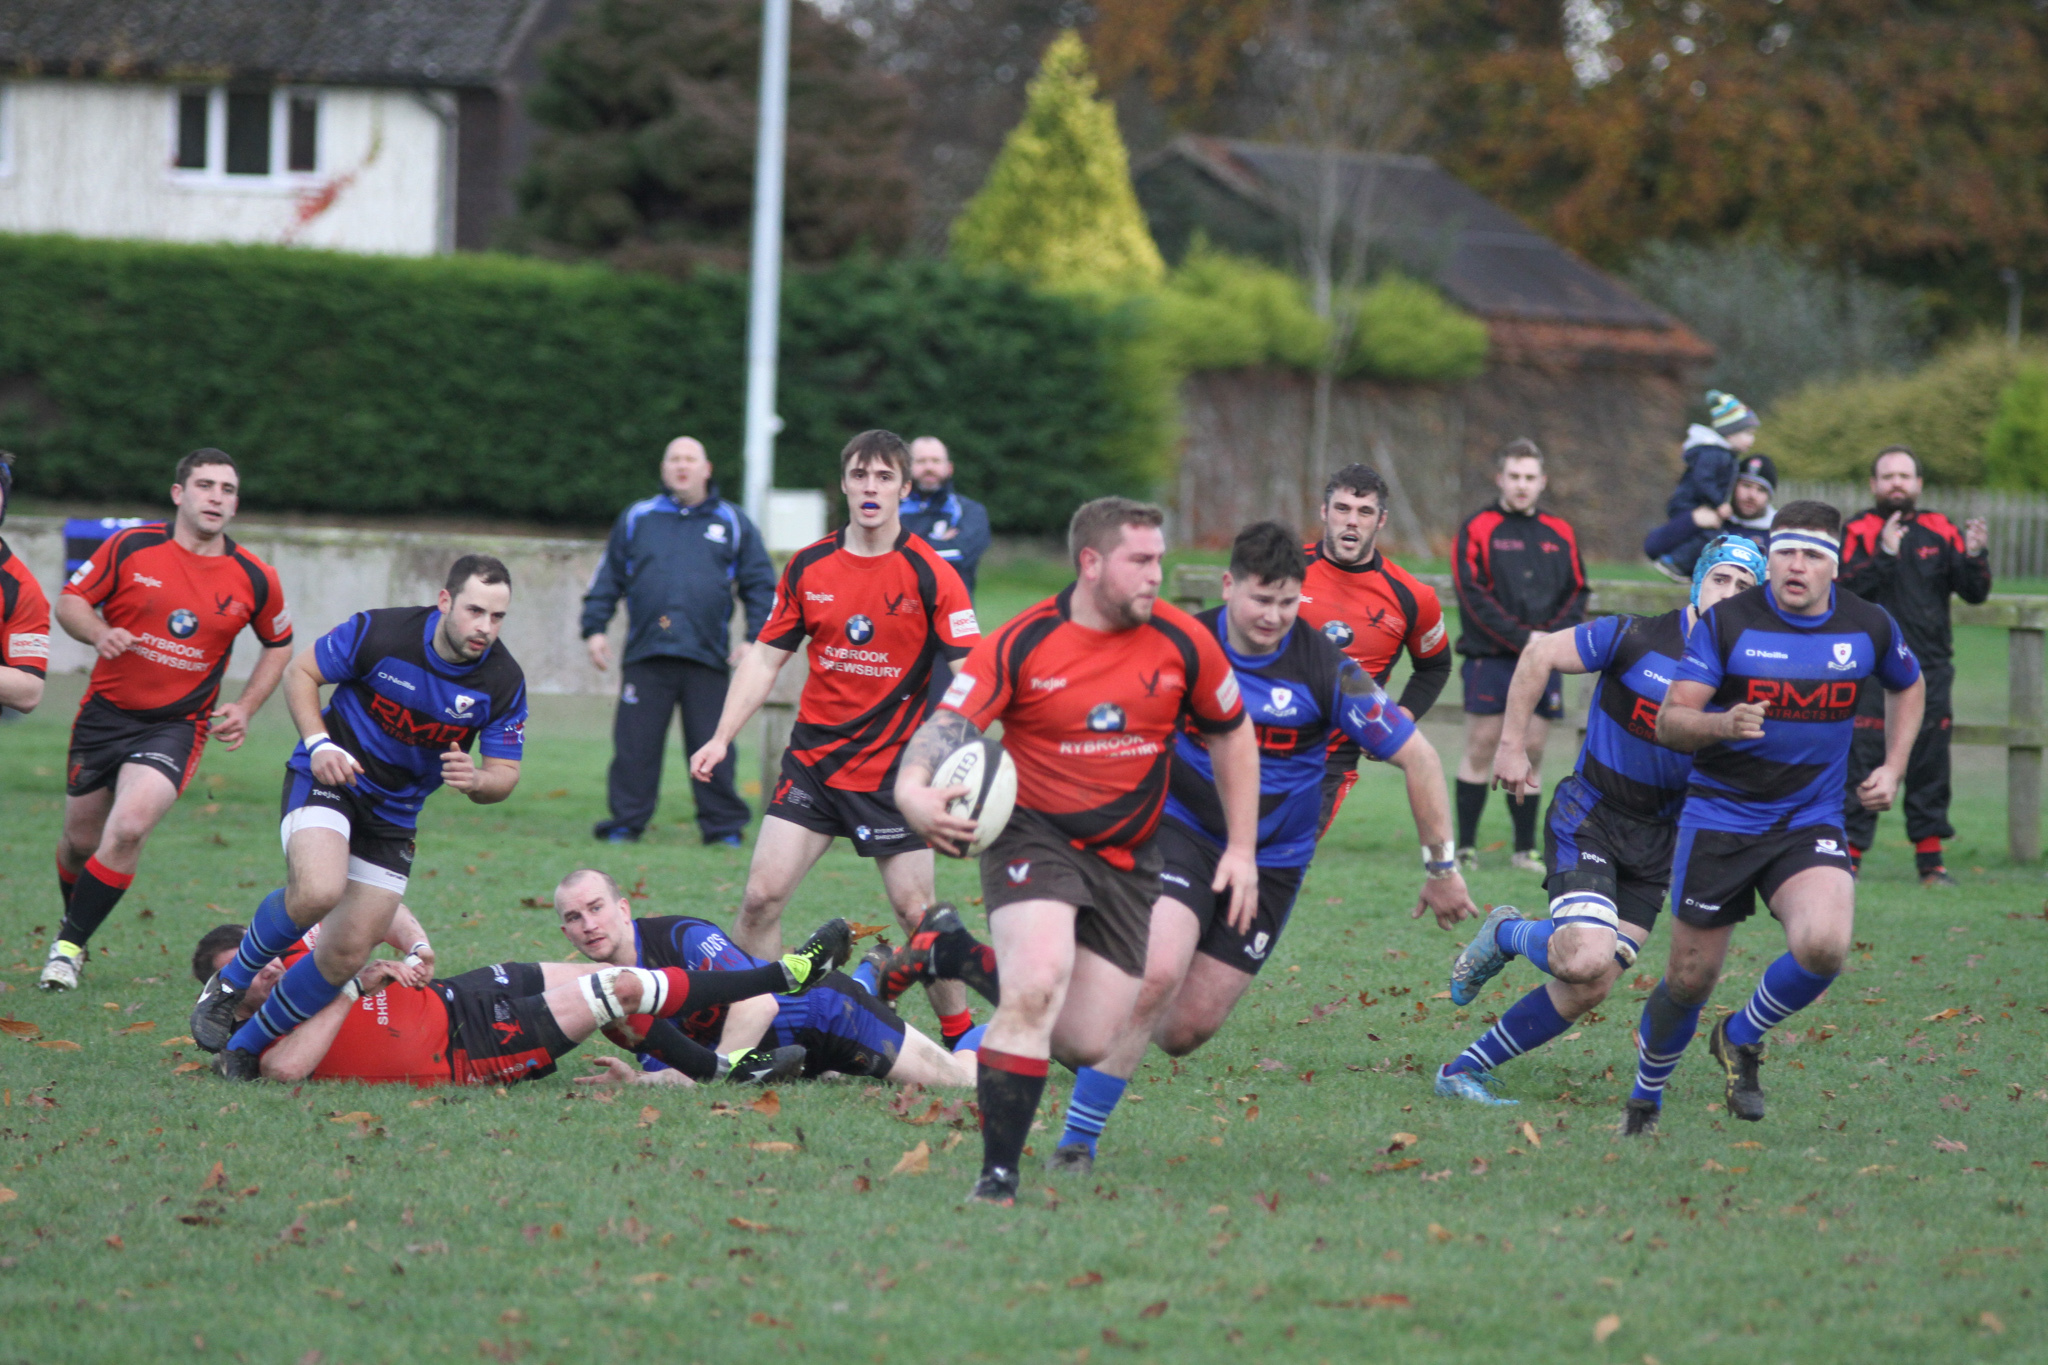 Oswestry in action at Granville Park